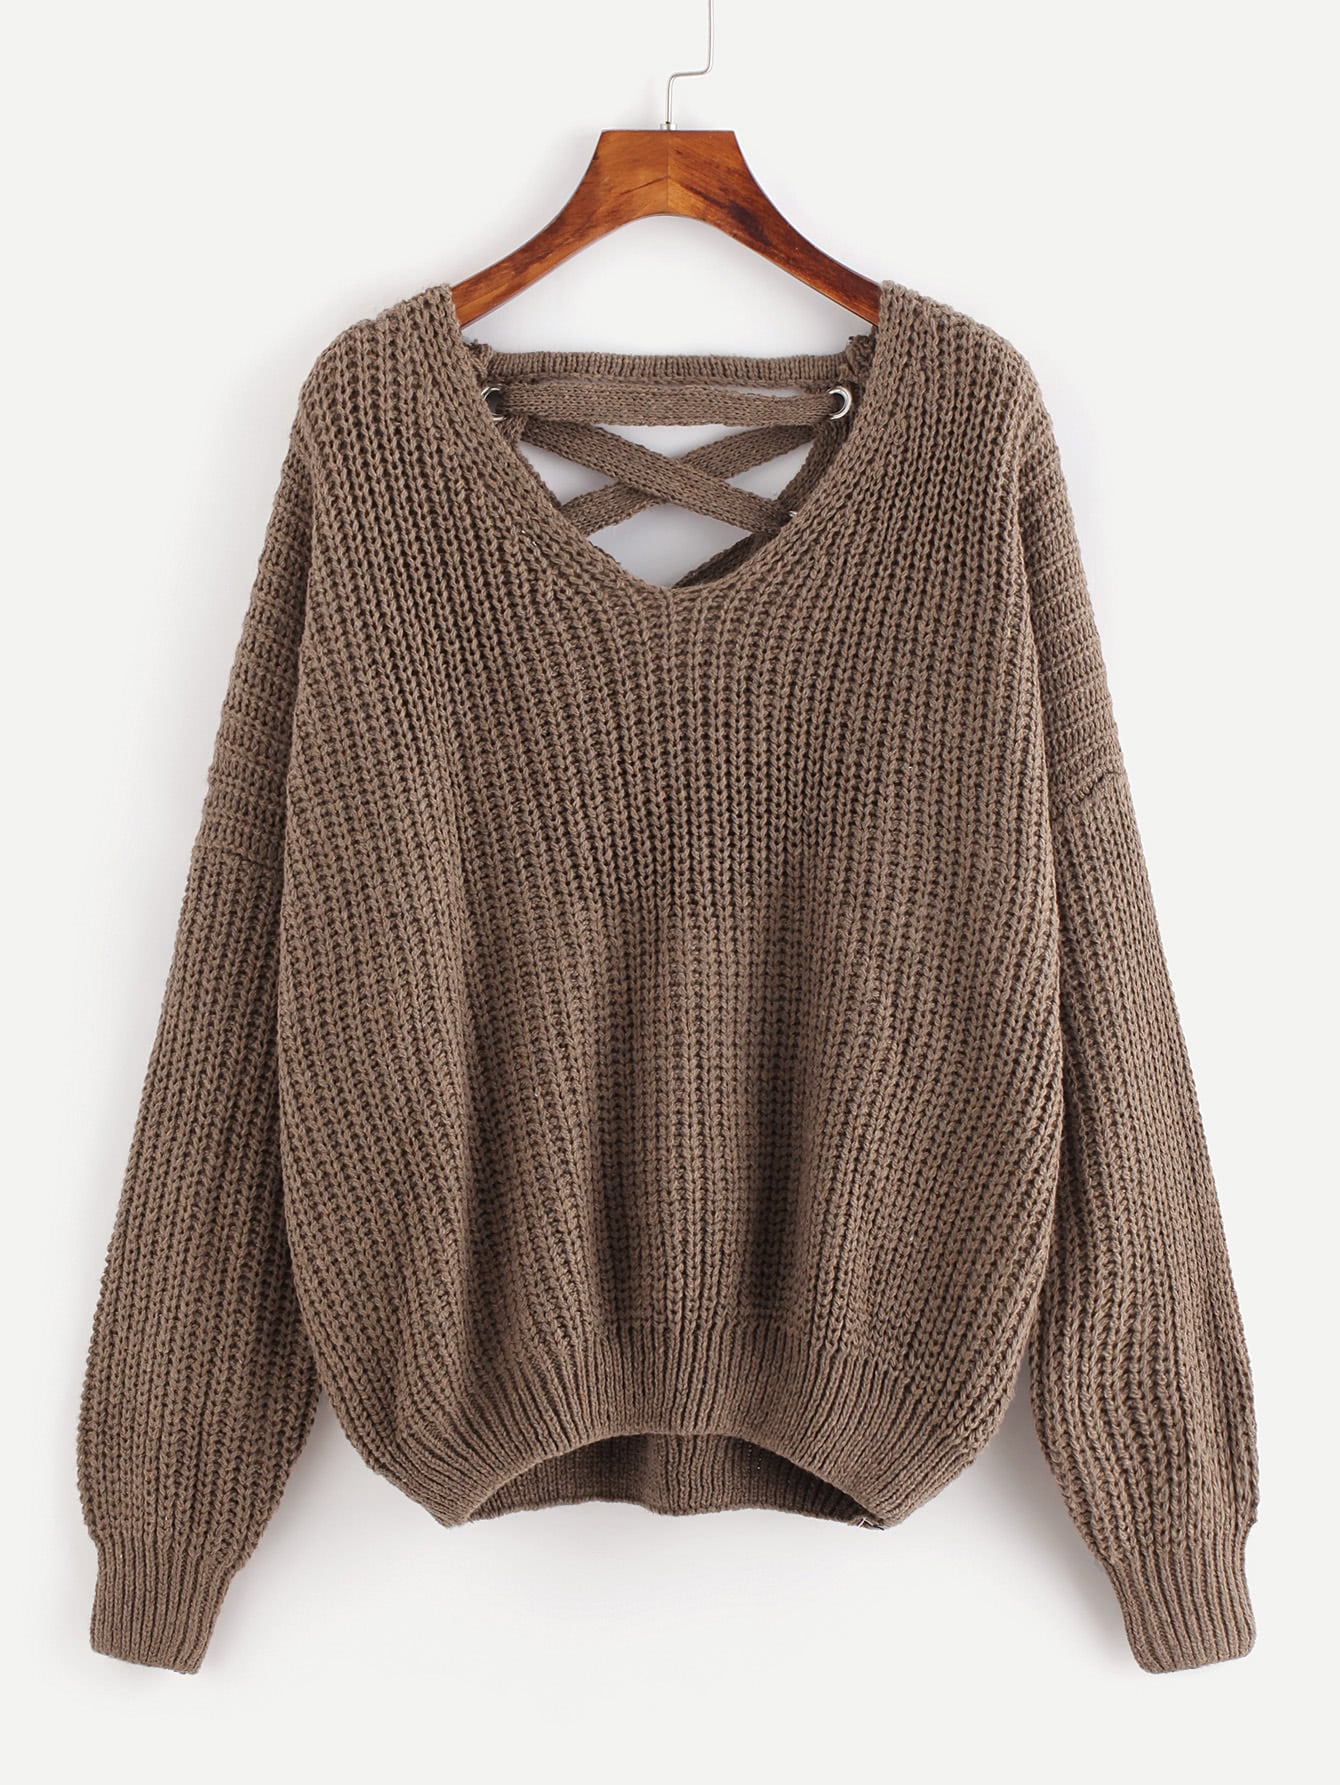 Grommet Lace Up Plunge Back Chunky Knit Sweater plunge neck knit pullover sweater